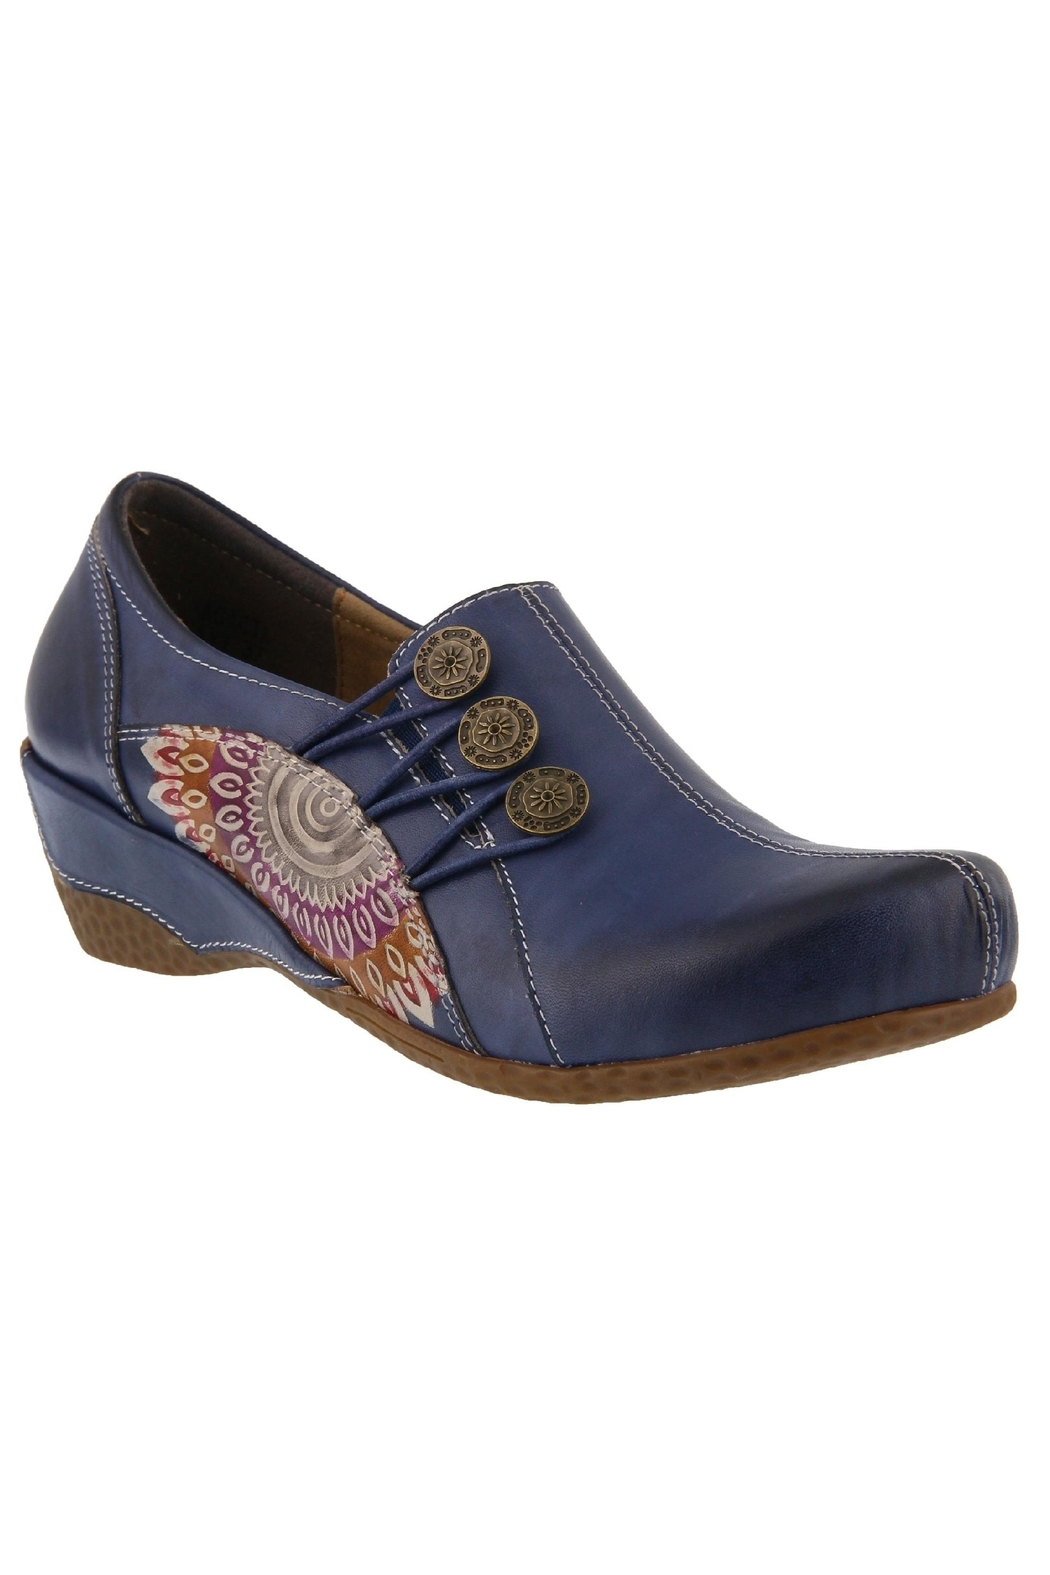 Spring Footwear Hand-Painted Leather Loafer - Main Image